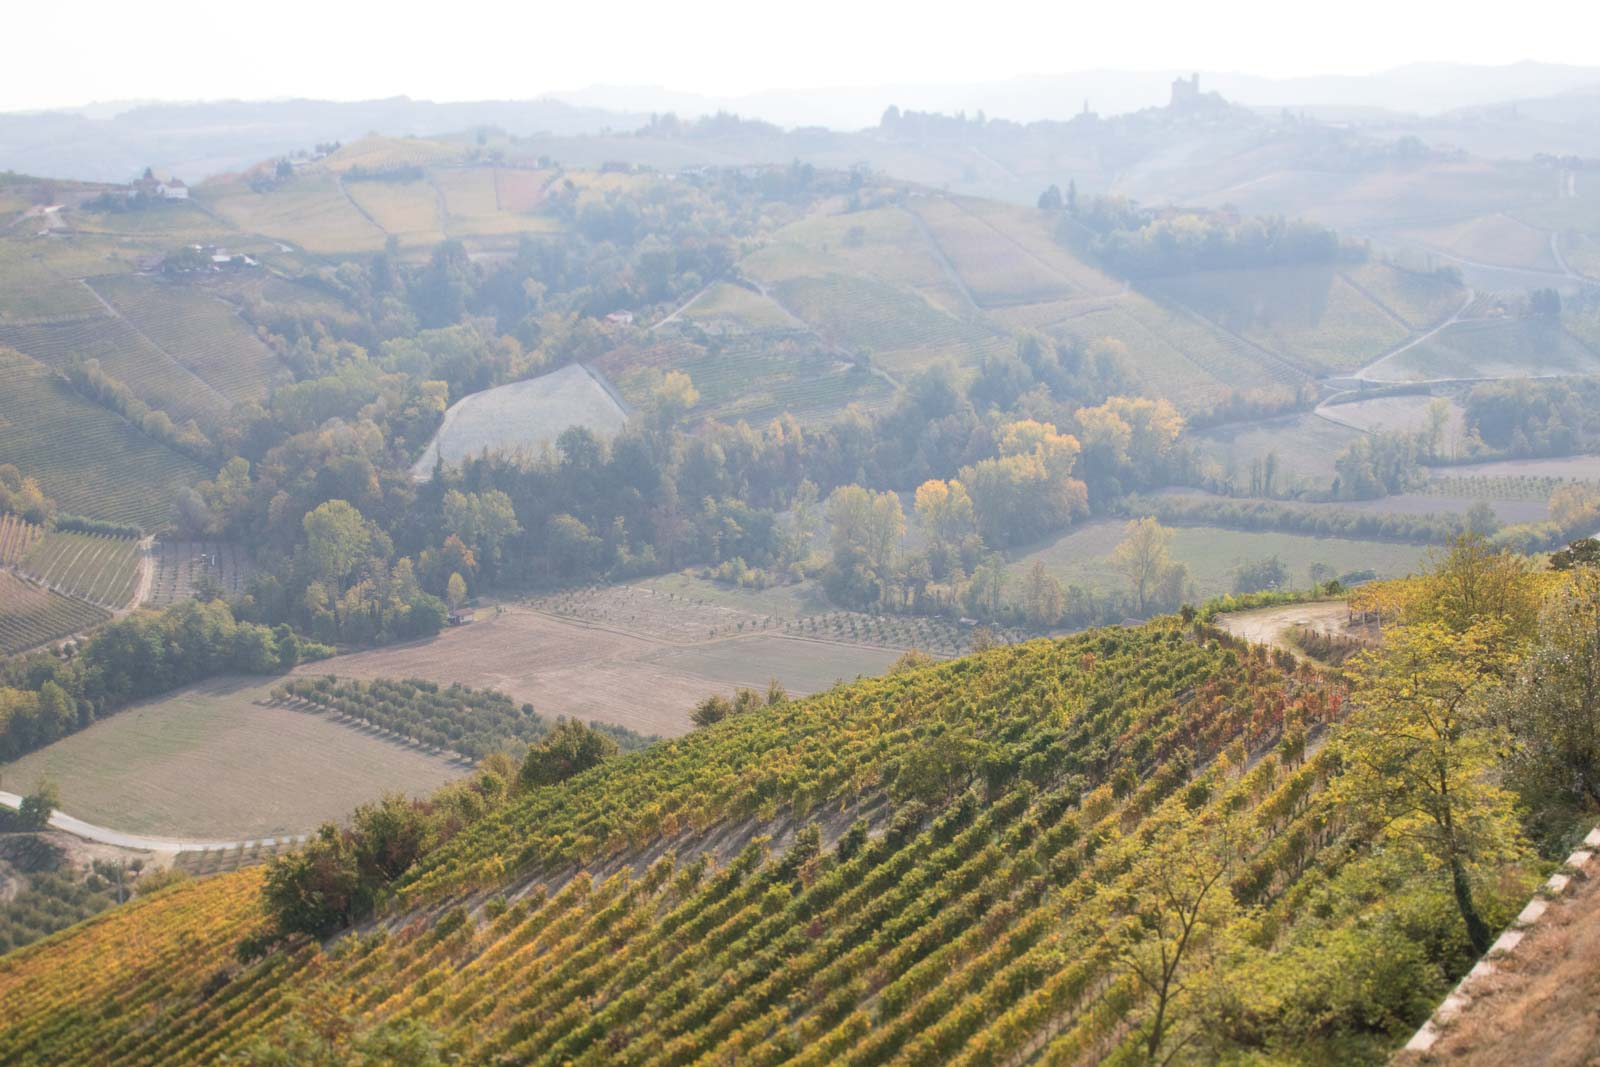 The view toward Serralunga d'Alba from Vietti's terrace atop Castiglione Falletto. The vineyards in the distance produce some of Barolo's sternest and most tannic expressions, and include the Lazzarito vineyard, which is a key holding for Vietti. ©Kevin Day/Opening a Bottle